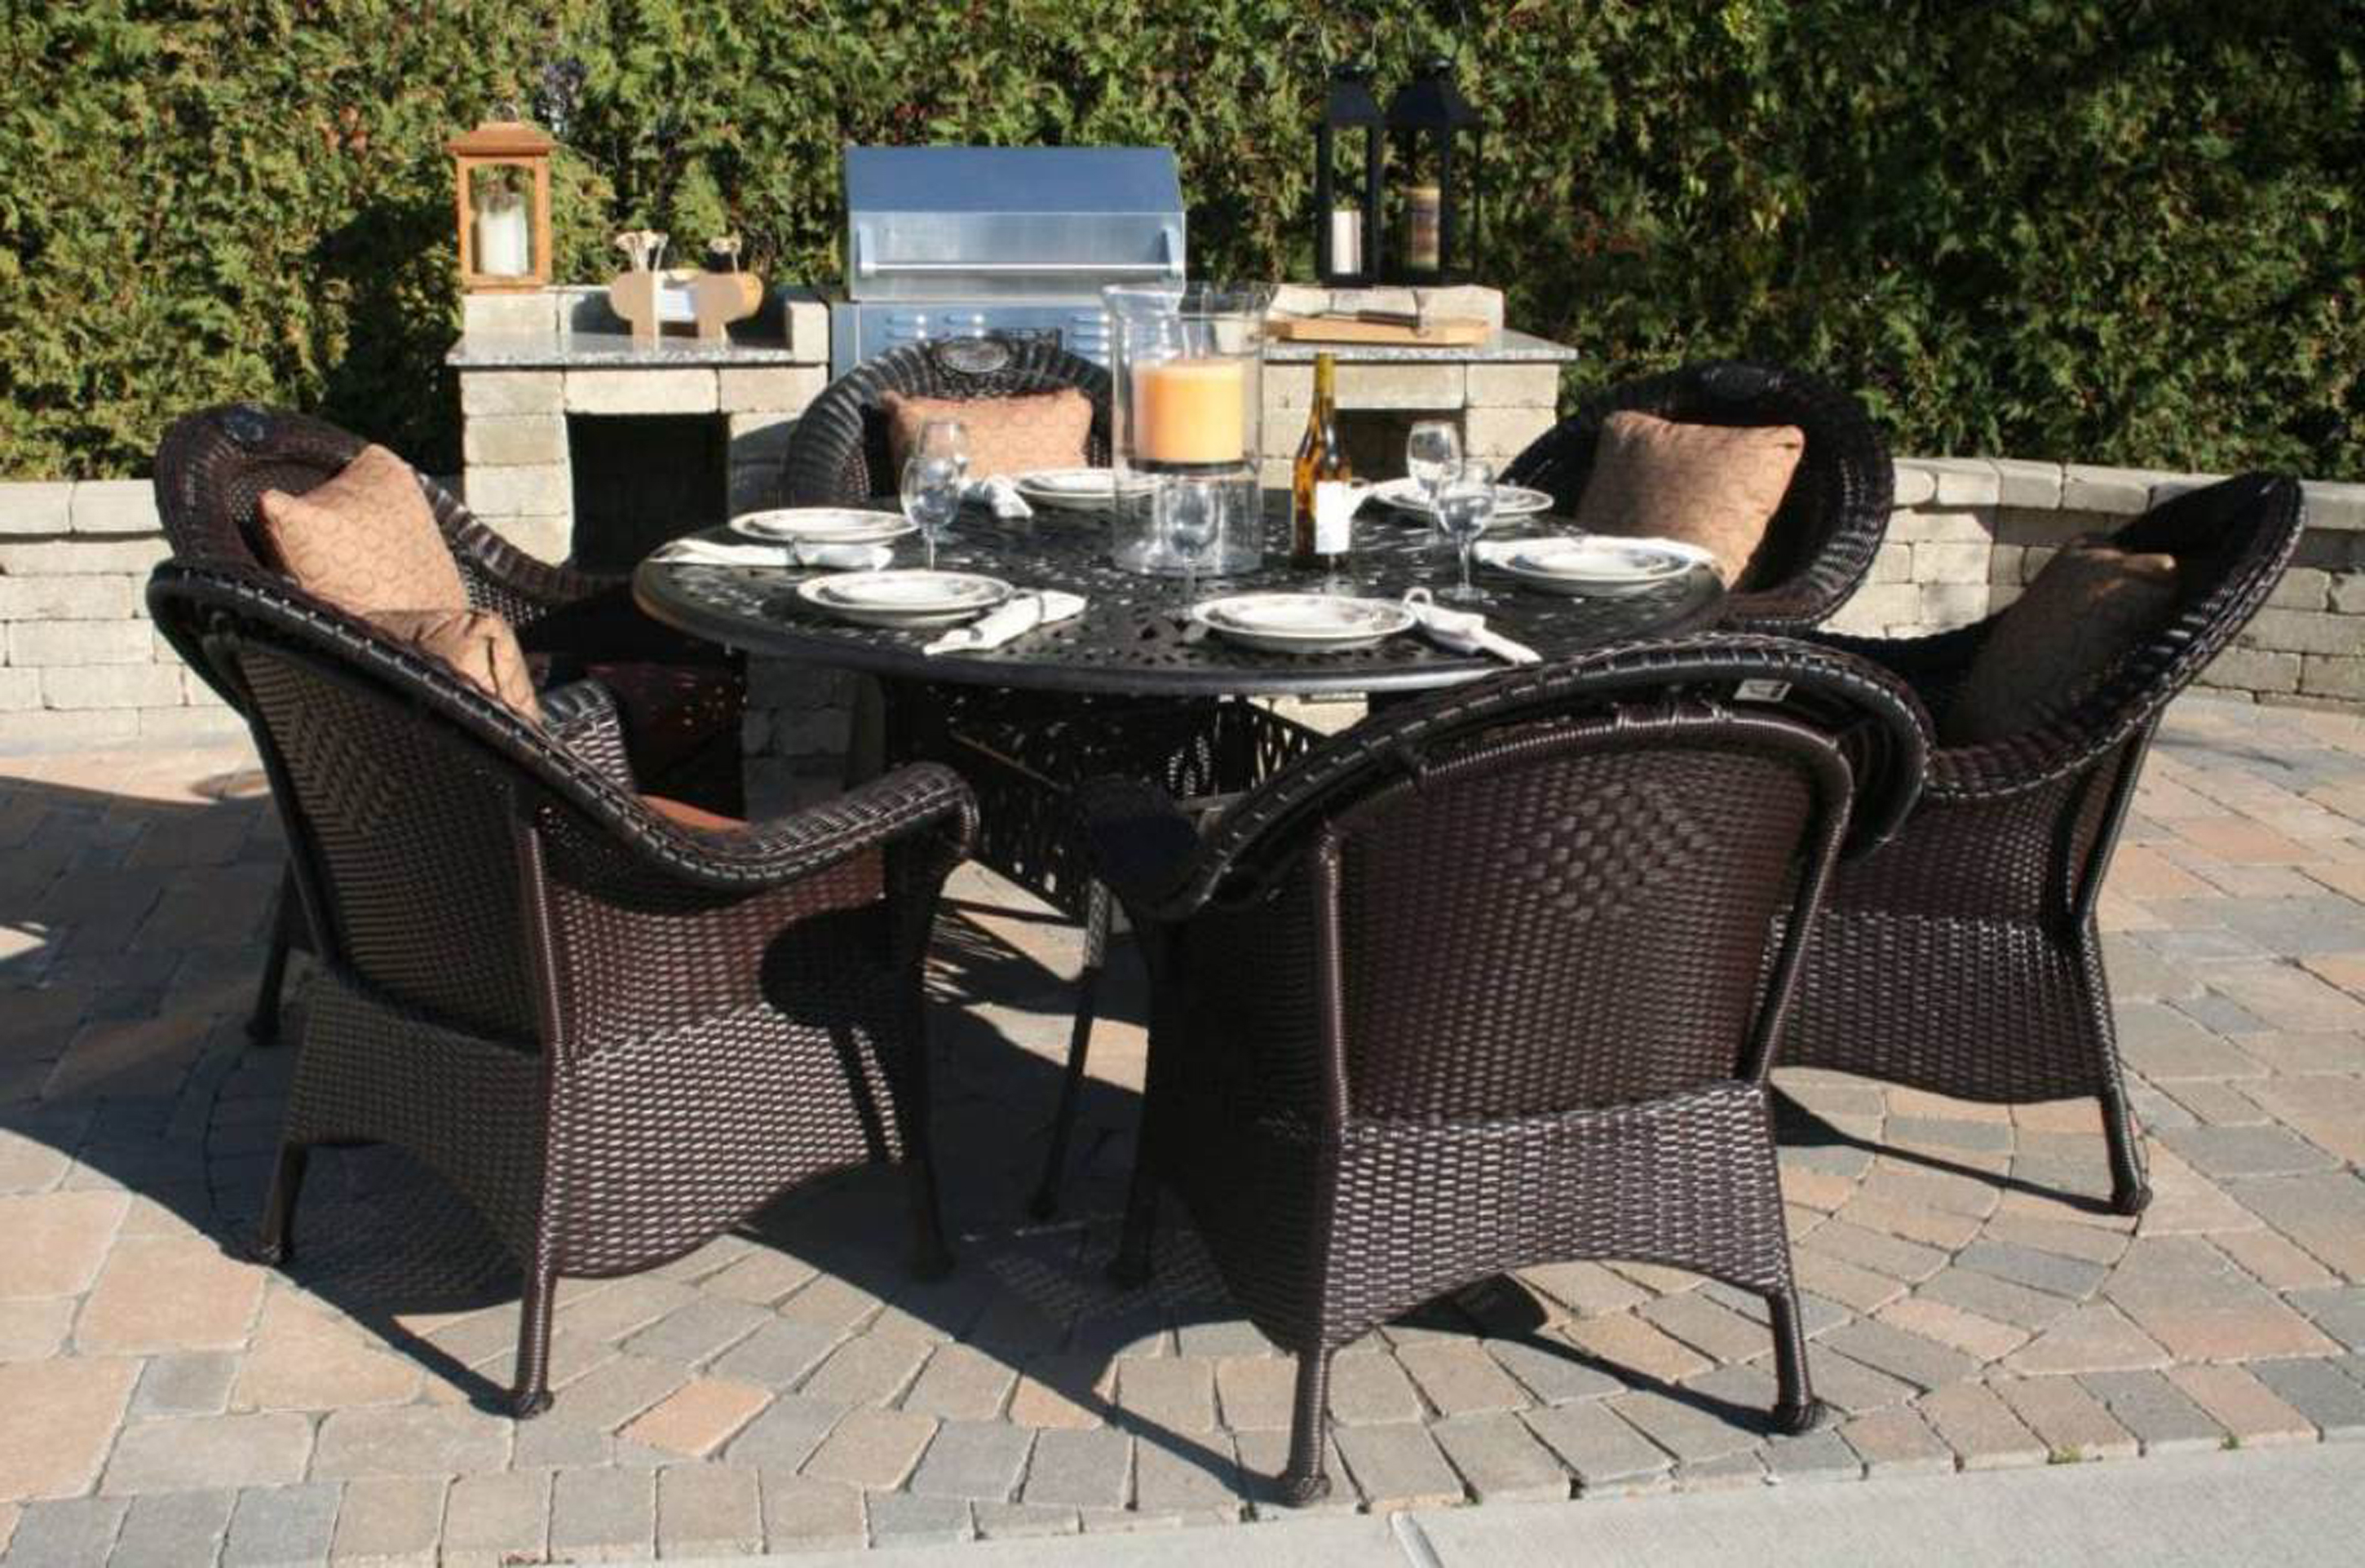 Amazing Outdoor Dining Set Idea With Round Black Table With Cream Candle White Plates And Black Chairs With Light Brown Cushions Admirable Outdoor Dining Set Ideas (Image 12 of 28)